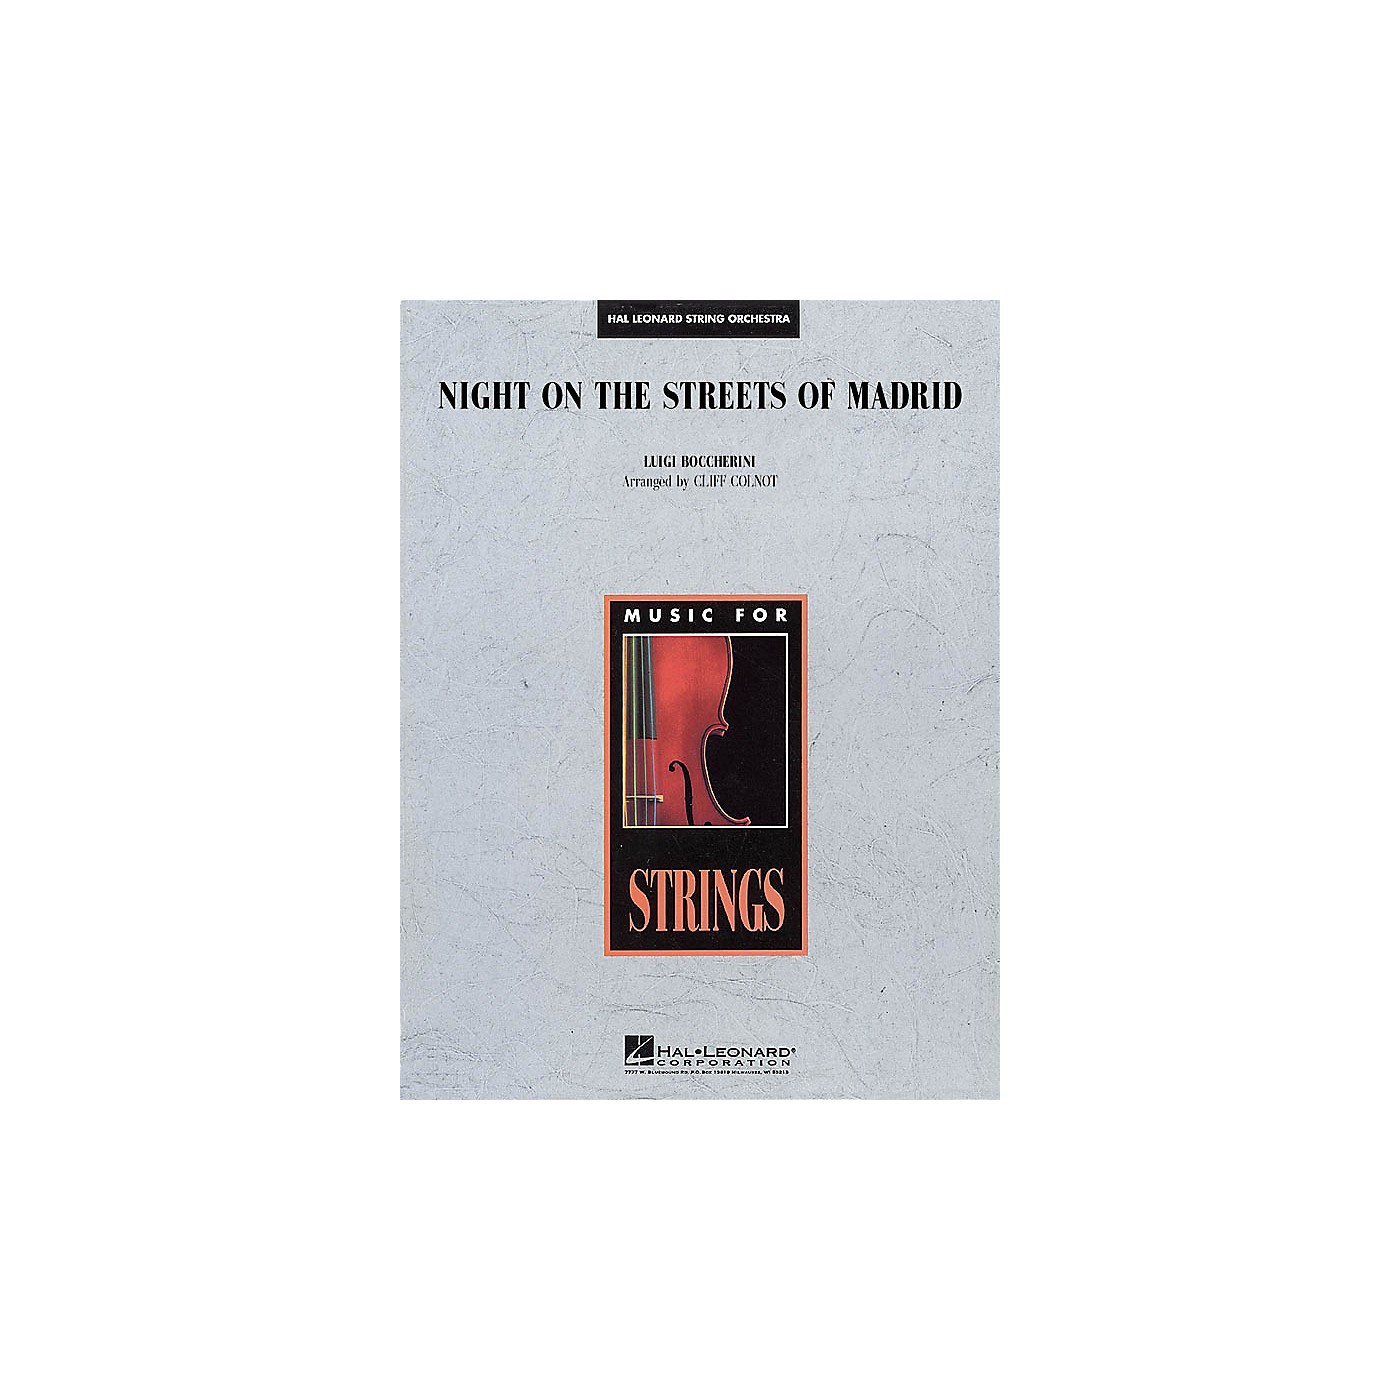 Hal Leonard Night on the Streets of Madrid Music for String Orchestra Series Arranged by Jamin Hoffman thumbnail